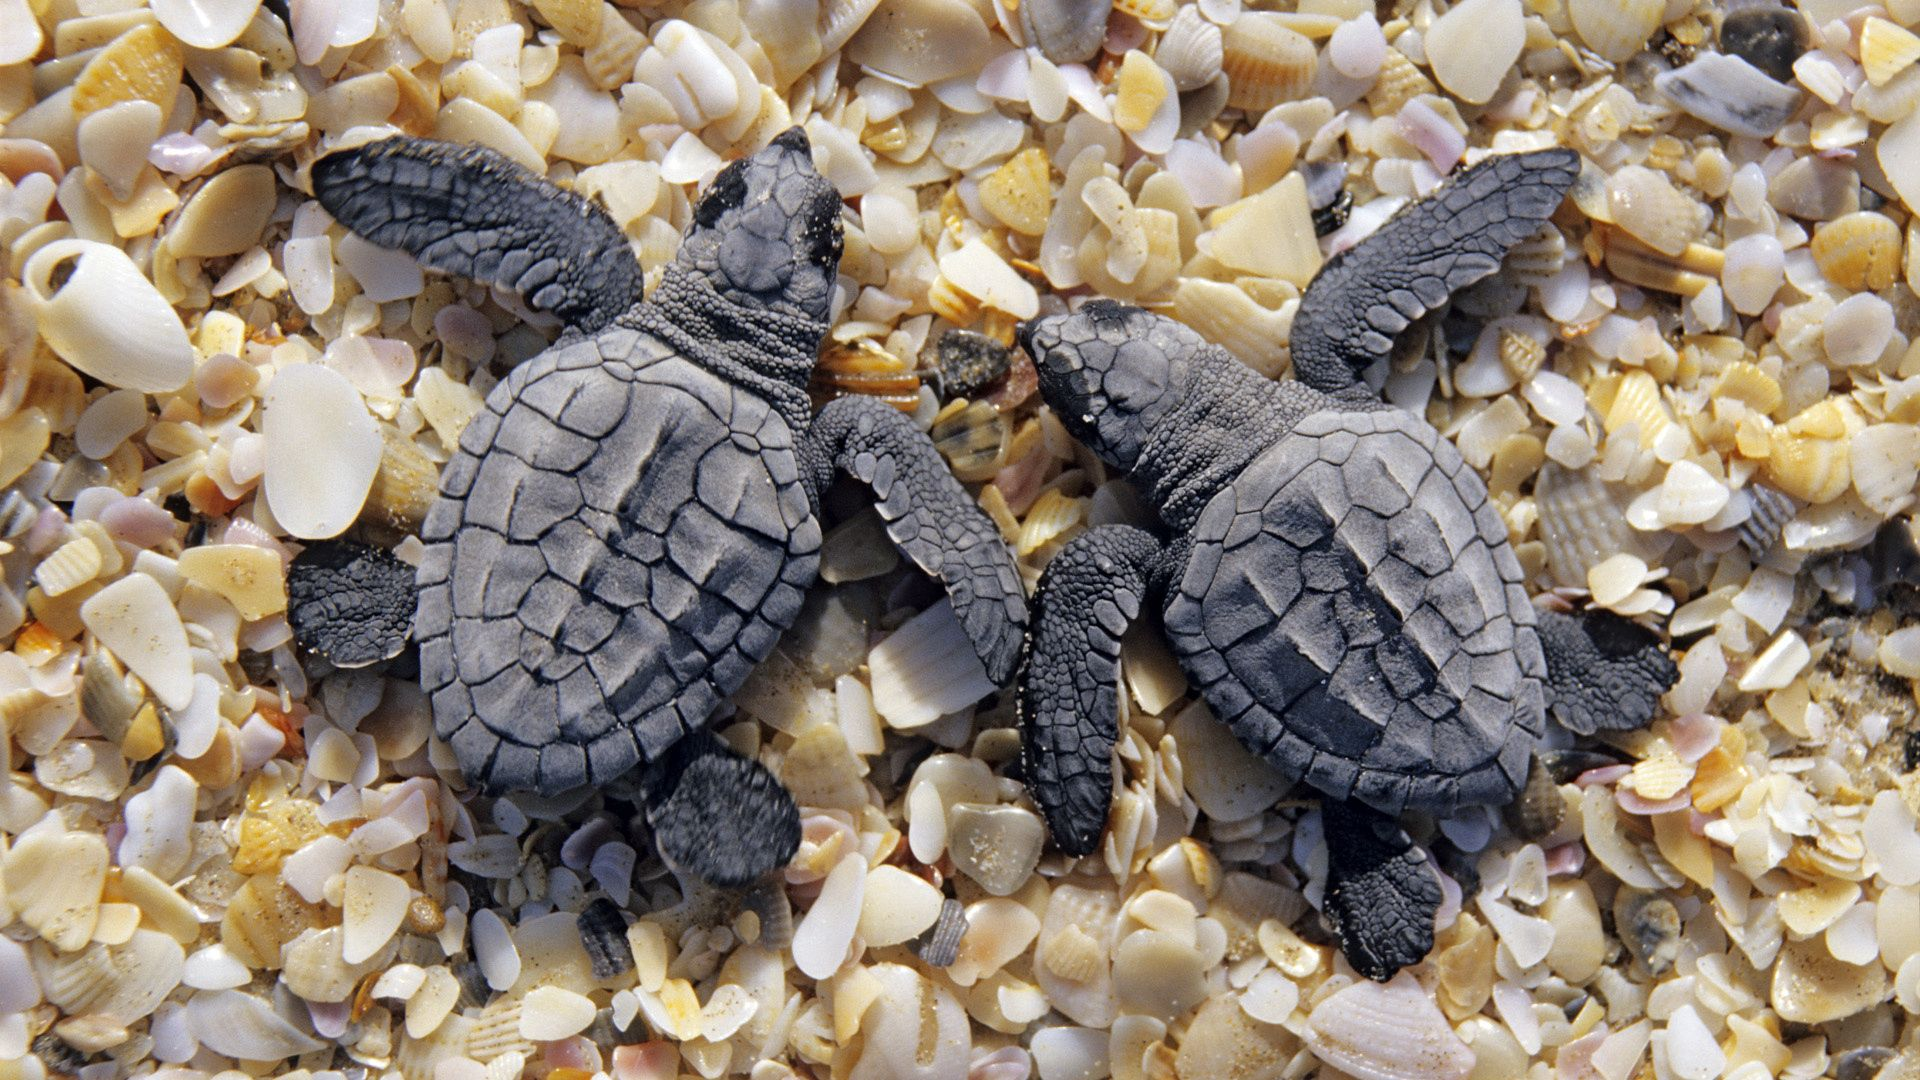 149231 download wallpaper Animals, Turtles, Stones, Beach, Carapace, Shell screensavers and pictures for free